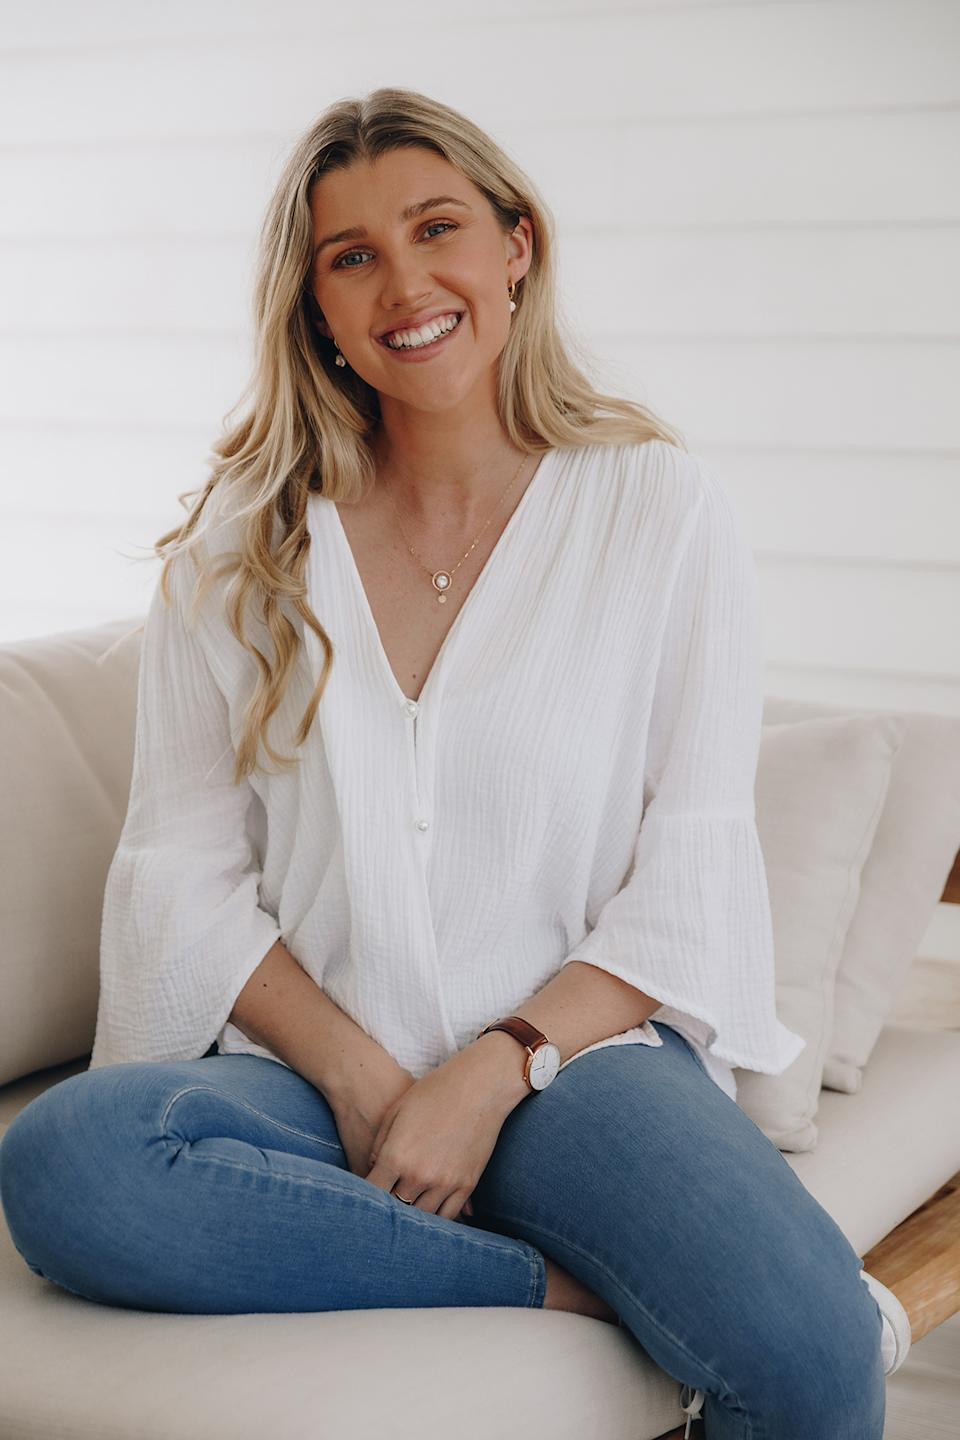 Rhiannon Duke of Duke the Label shares why she ditched 'large' sizing. Photo: Supplied